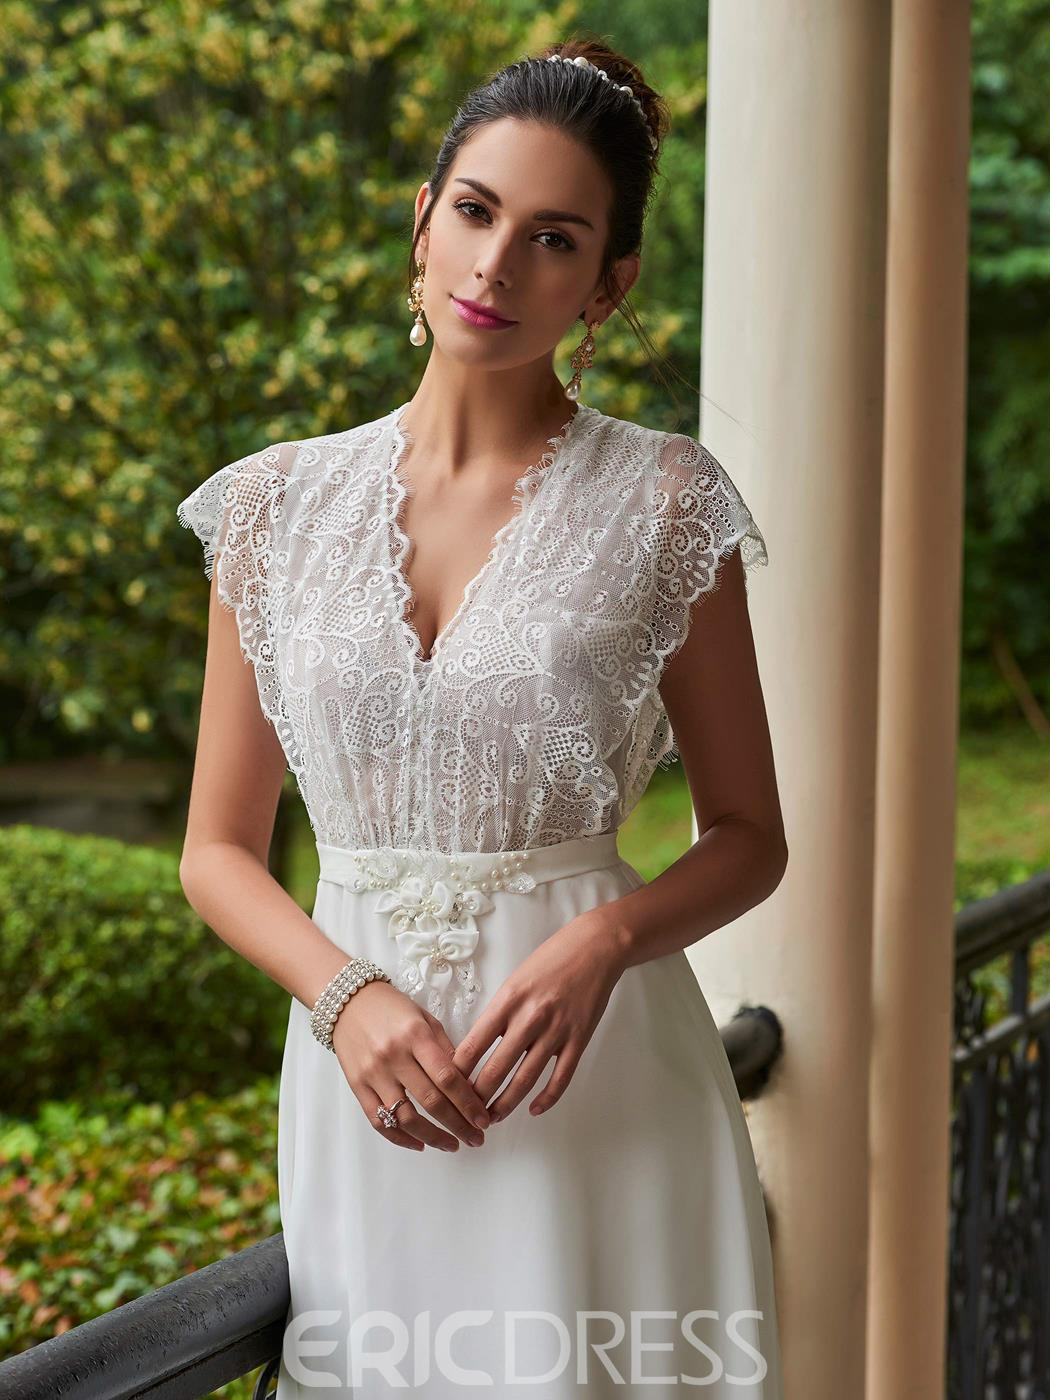 Ericdress Charming V Neck Lace A Line Wedding Dress